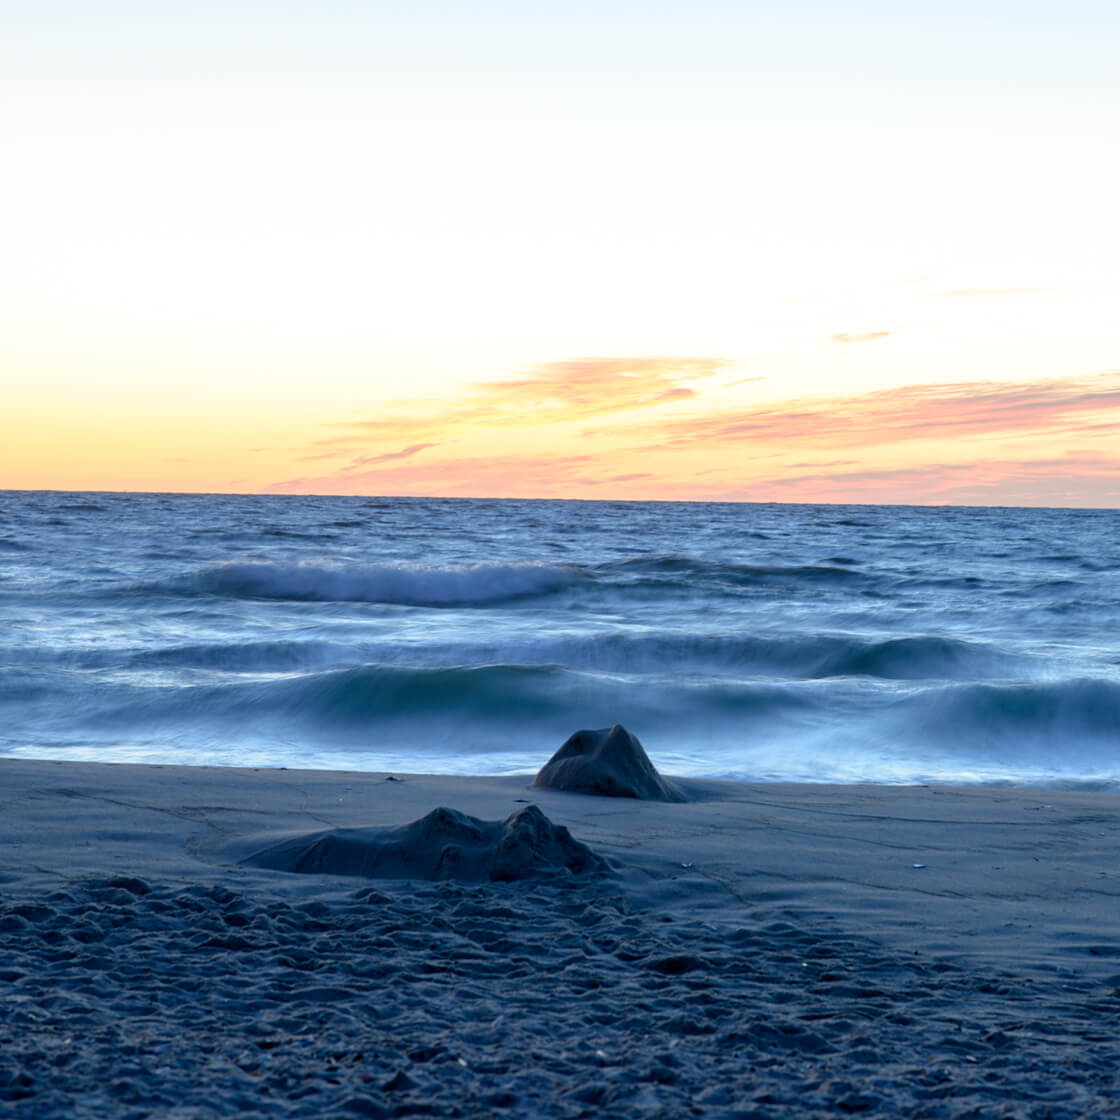 photo of a sunset, with mild waves crashing on a beach